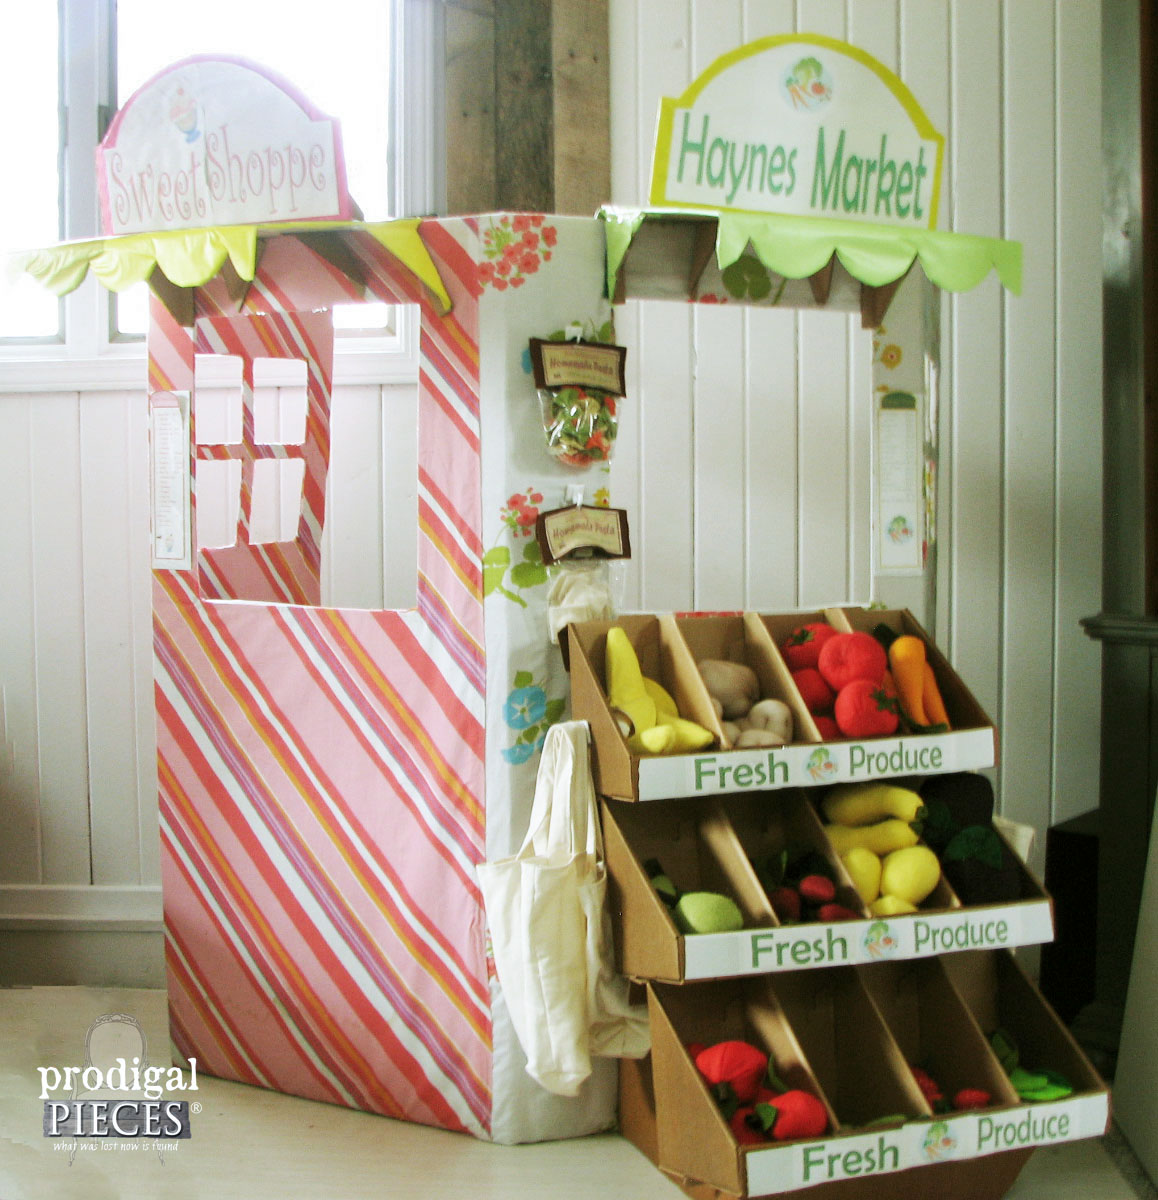 Handmade Cardboard Snack Stand and Farmer's Market by Prodigal Pieces | www.prodigalpieces.com